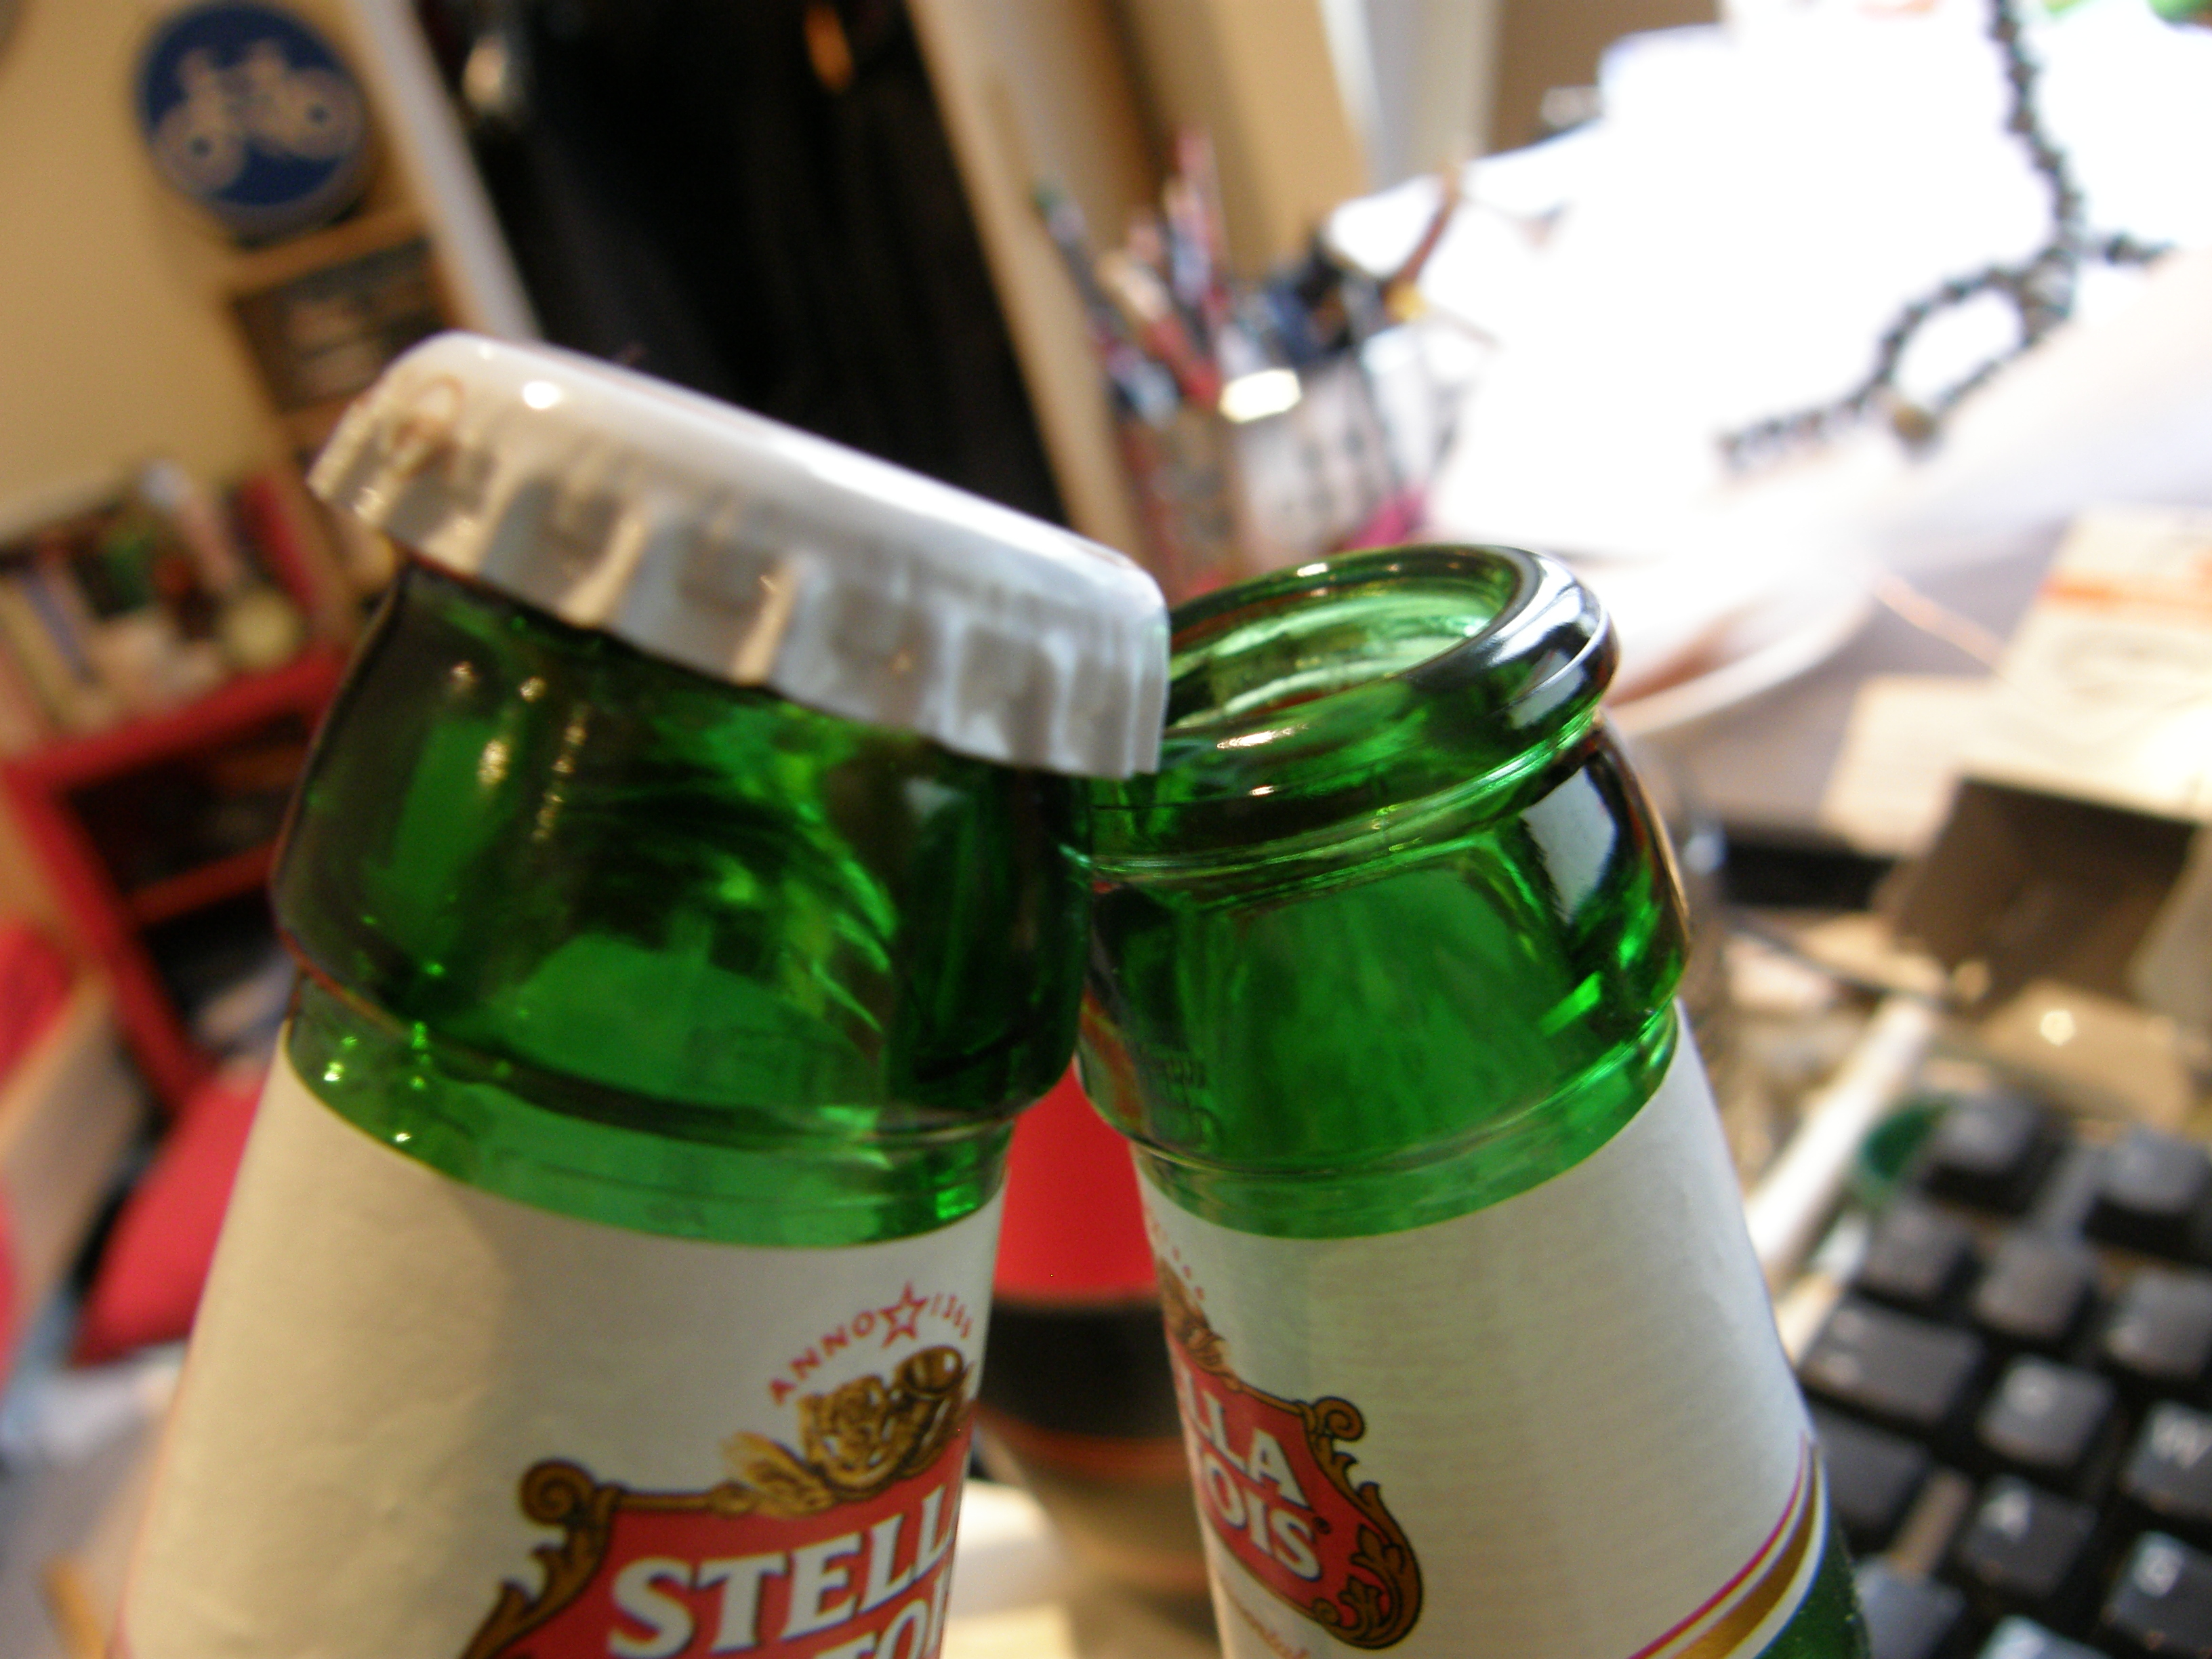 Opening that beer, many a way...